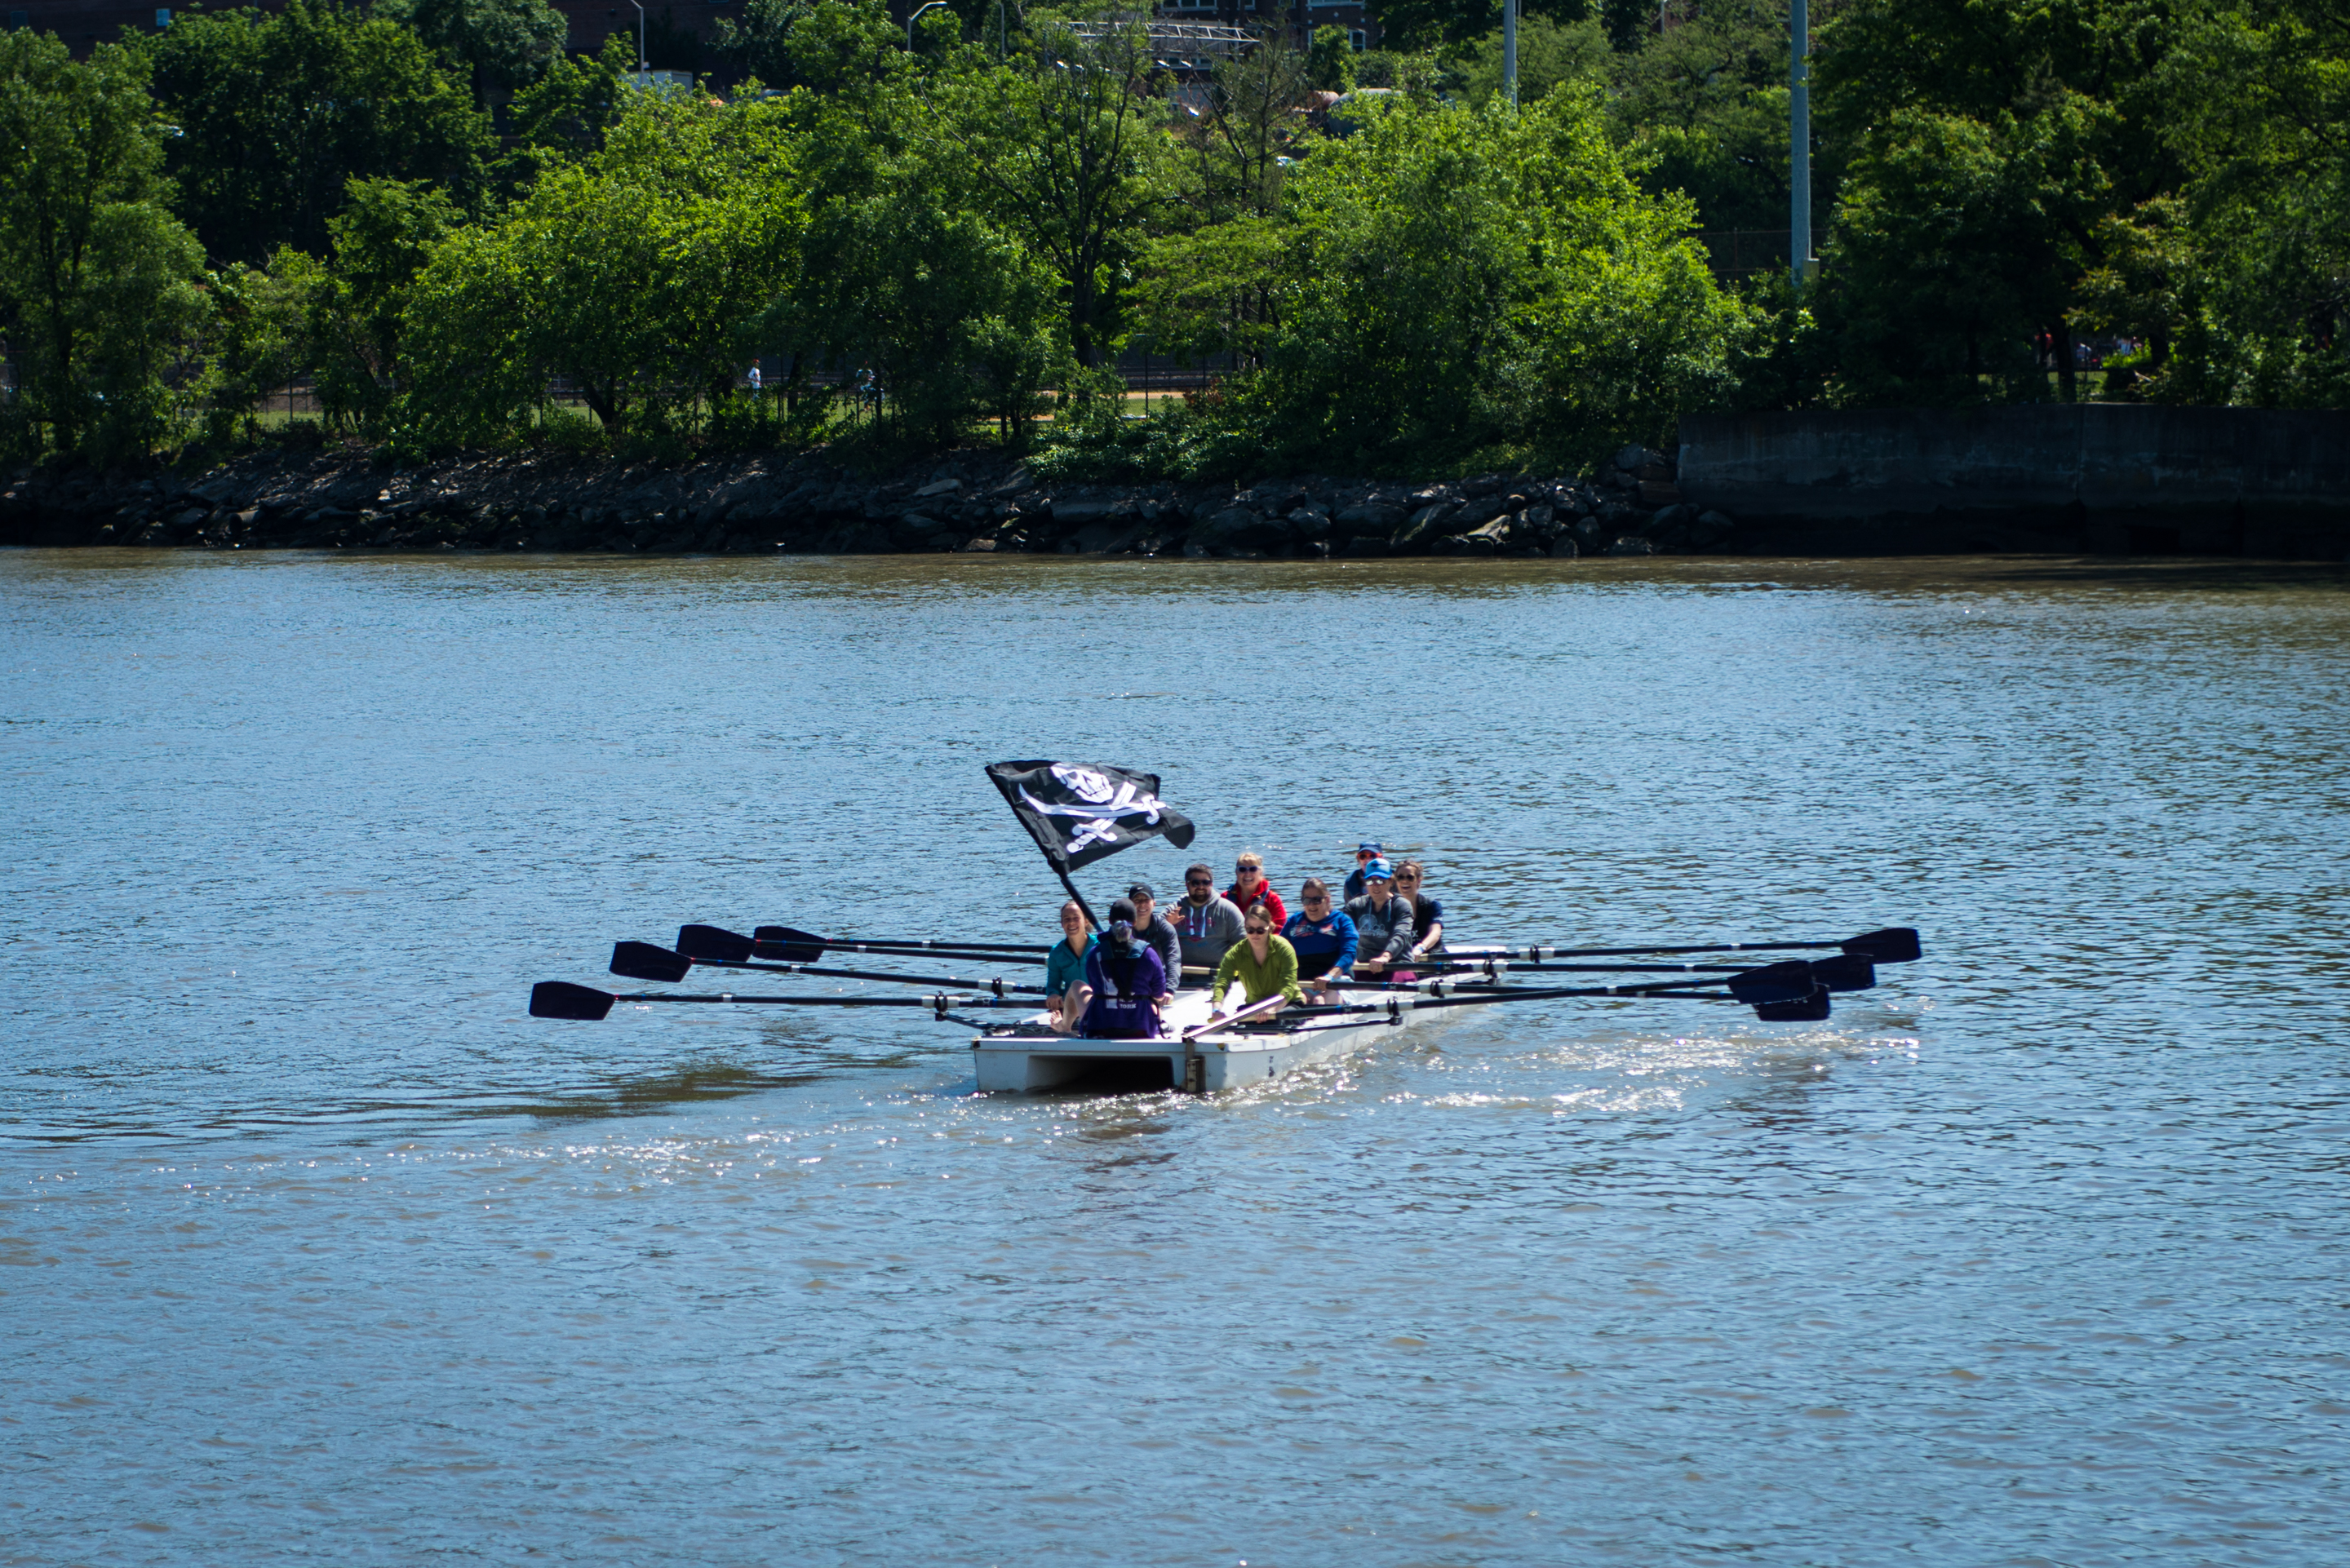 rowing with the pirate flag